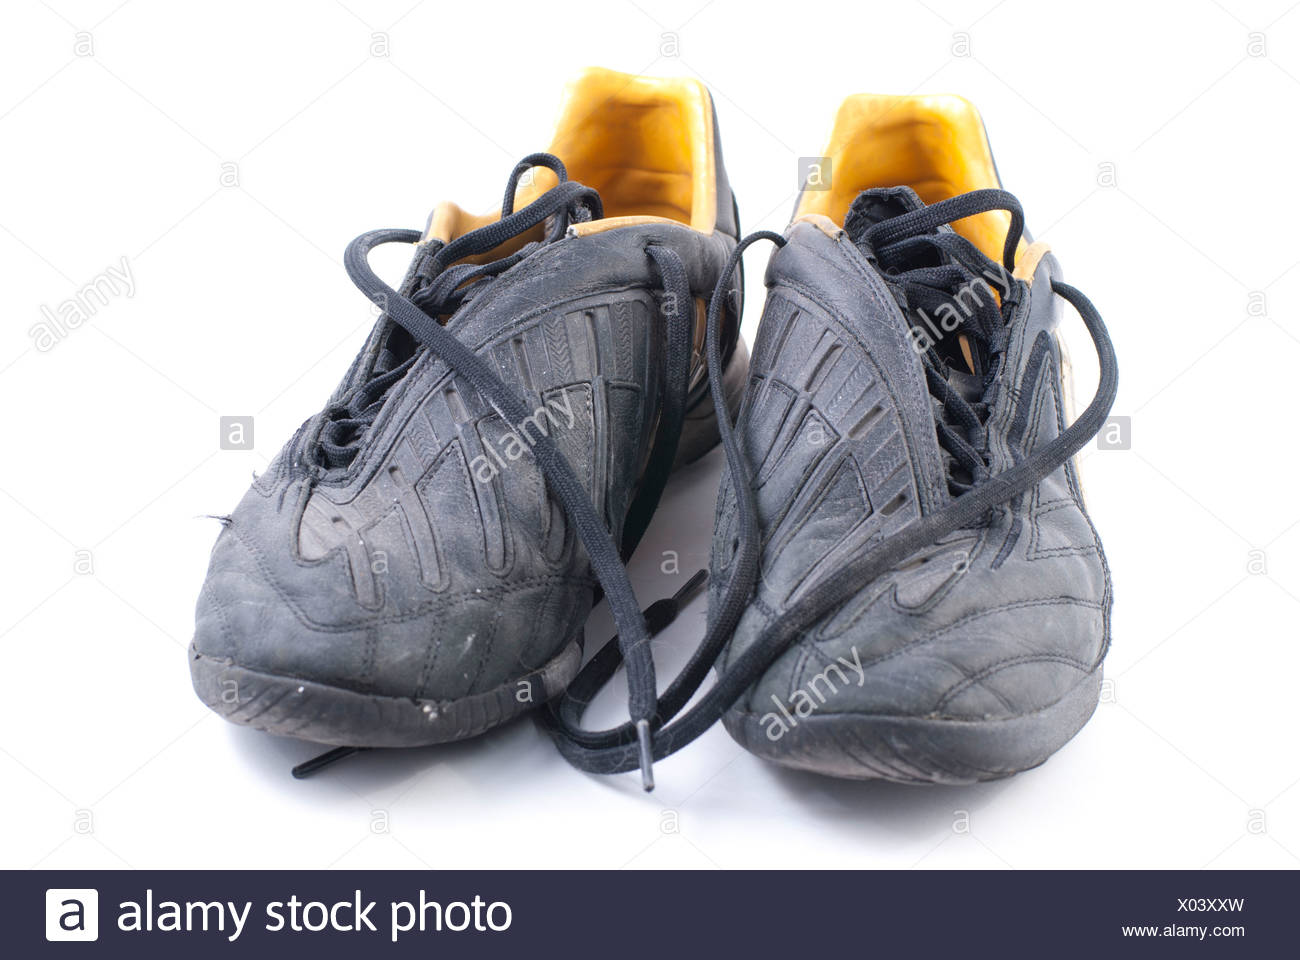 362a4398f two old black soccer shoes Stock Photo: 275452881 - Alamy